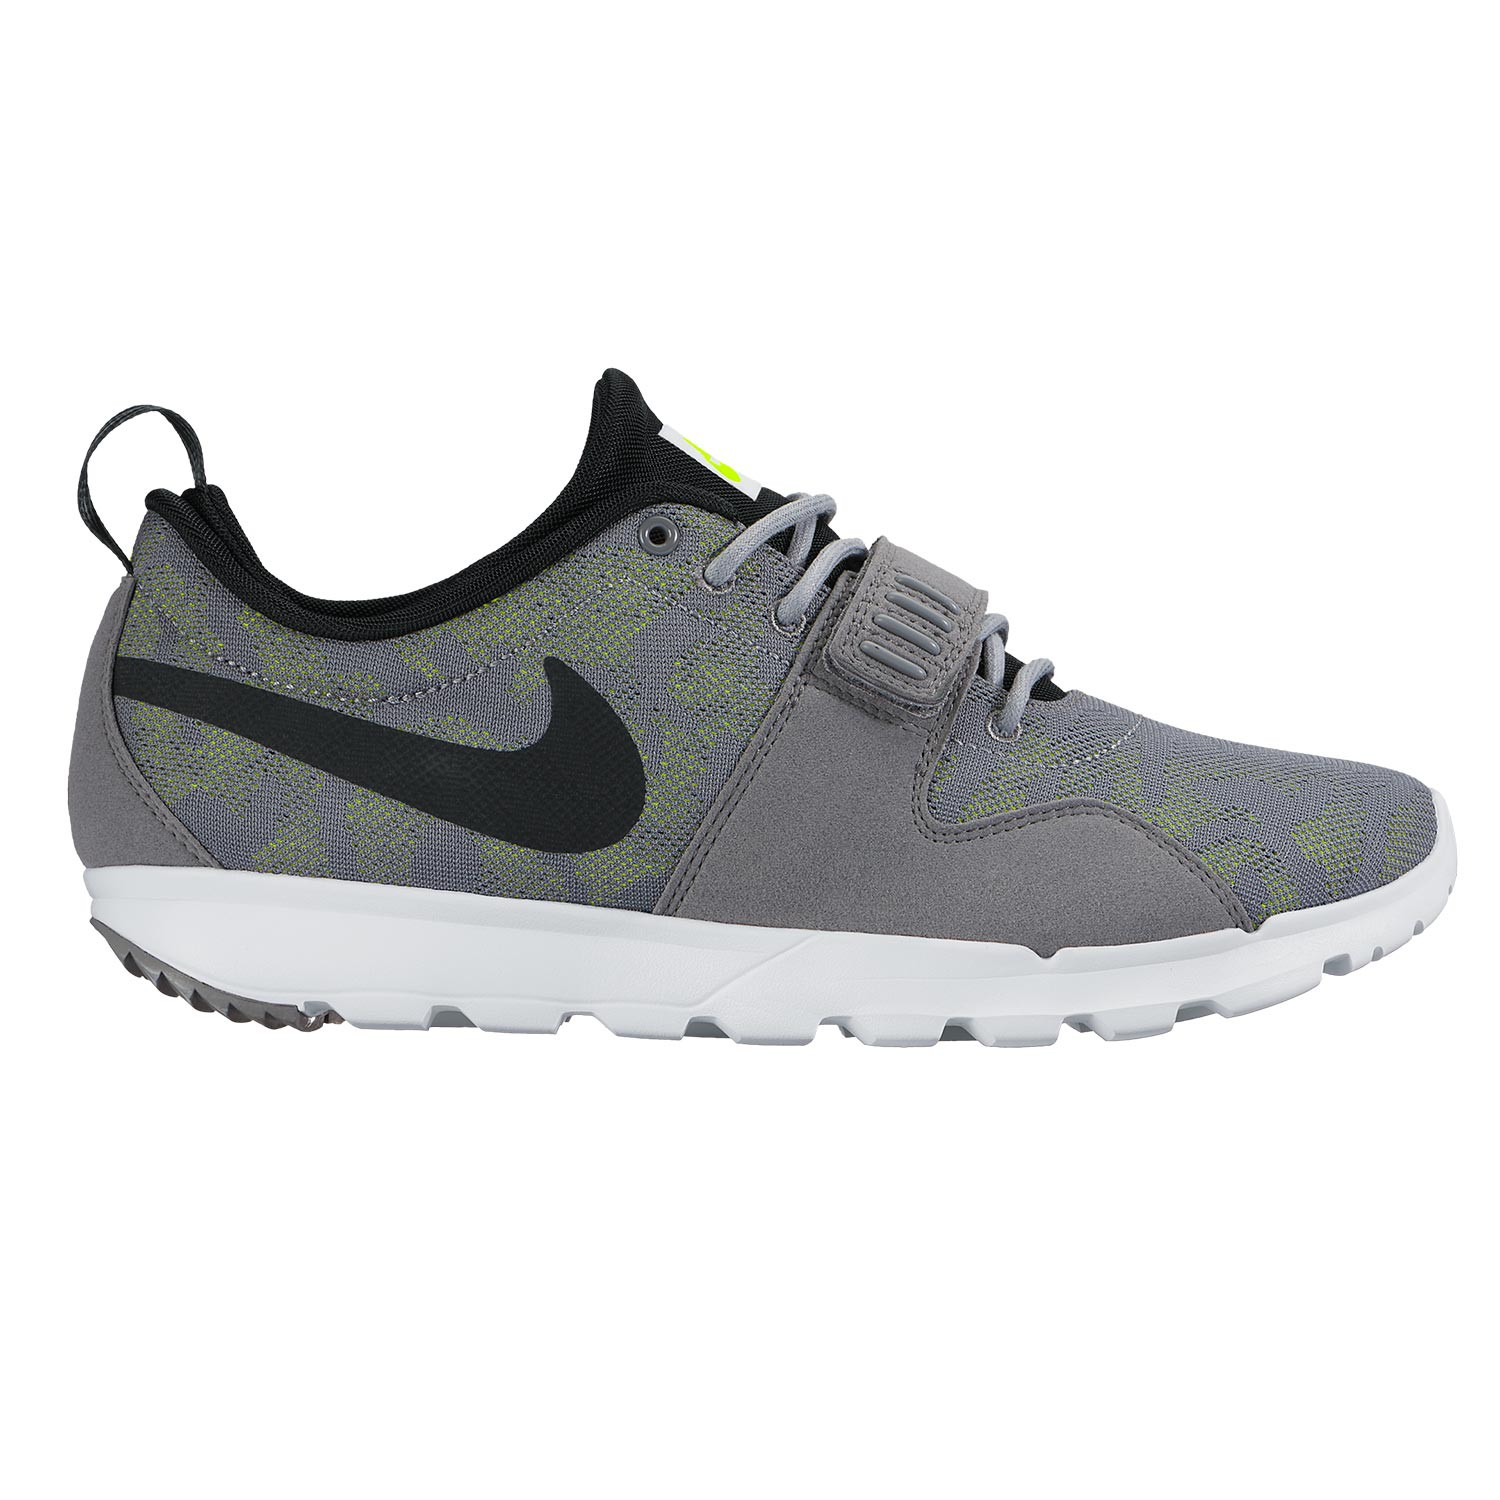 Tenisky Nike SB Trainerendor cool grey/black-white-volt